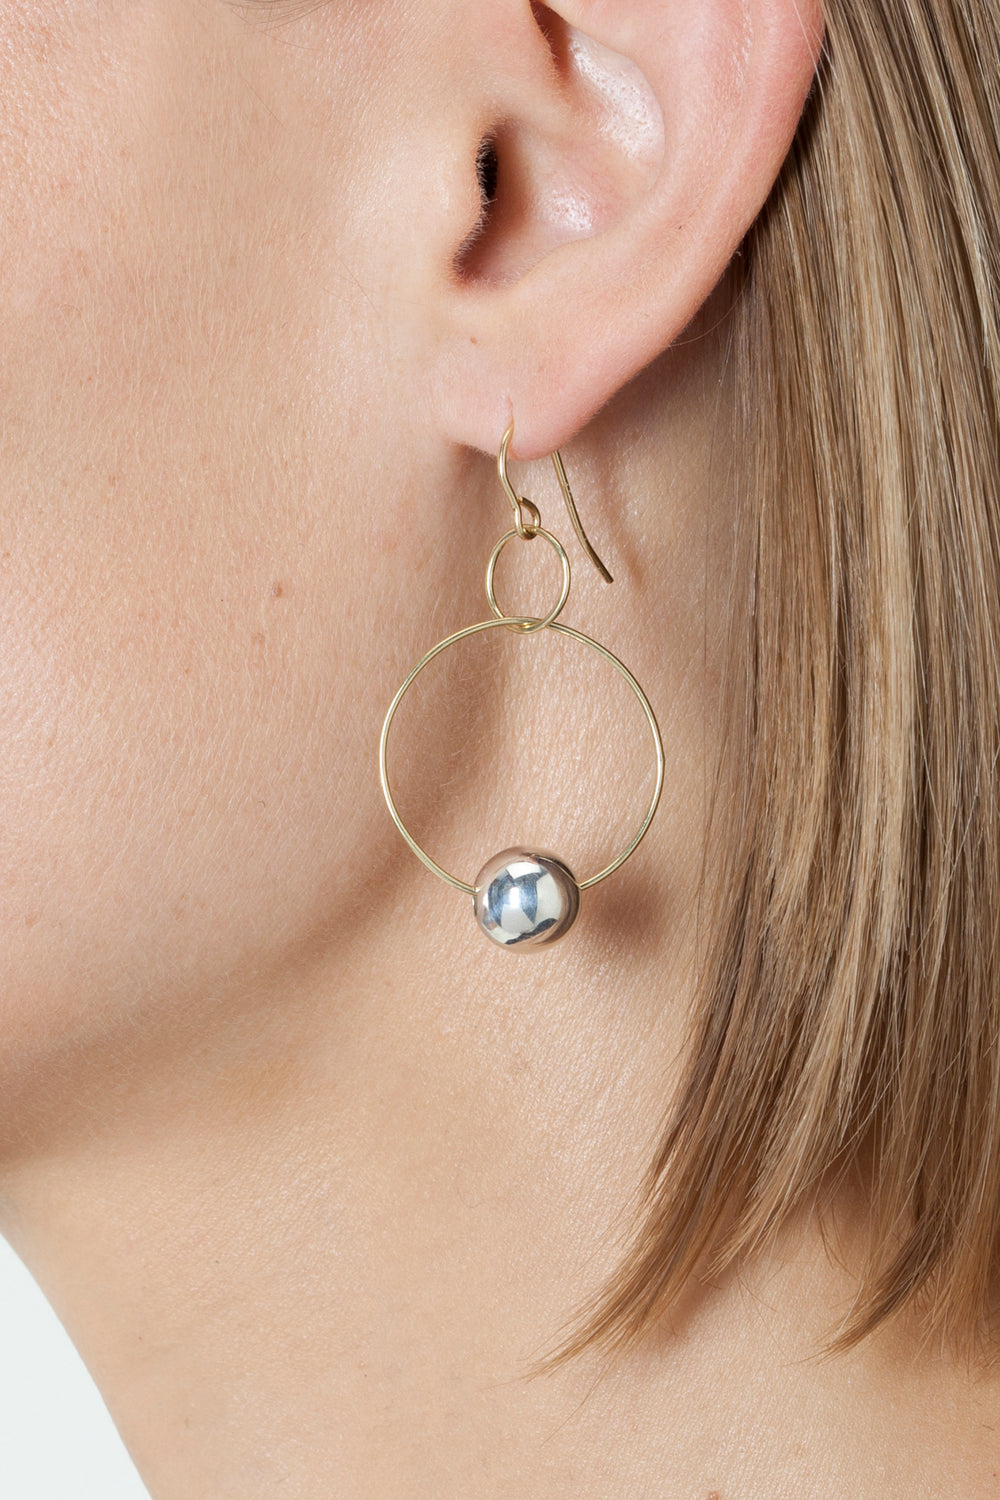 BLUNK DOUBLE HOOP EARRINGS - Gold & Silver